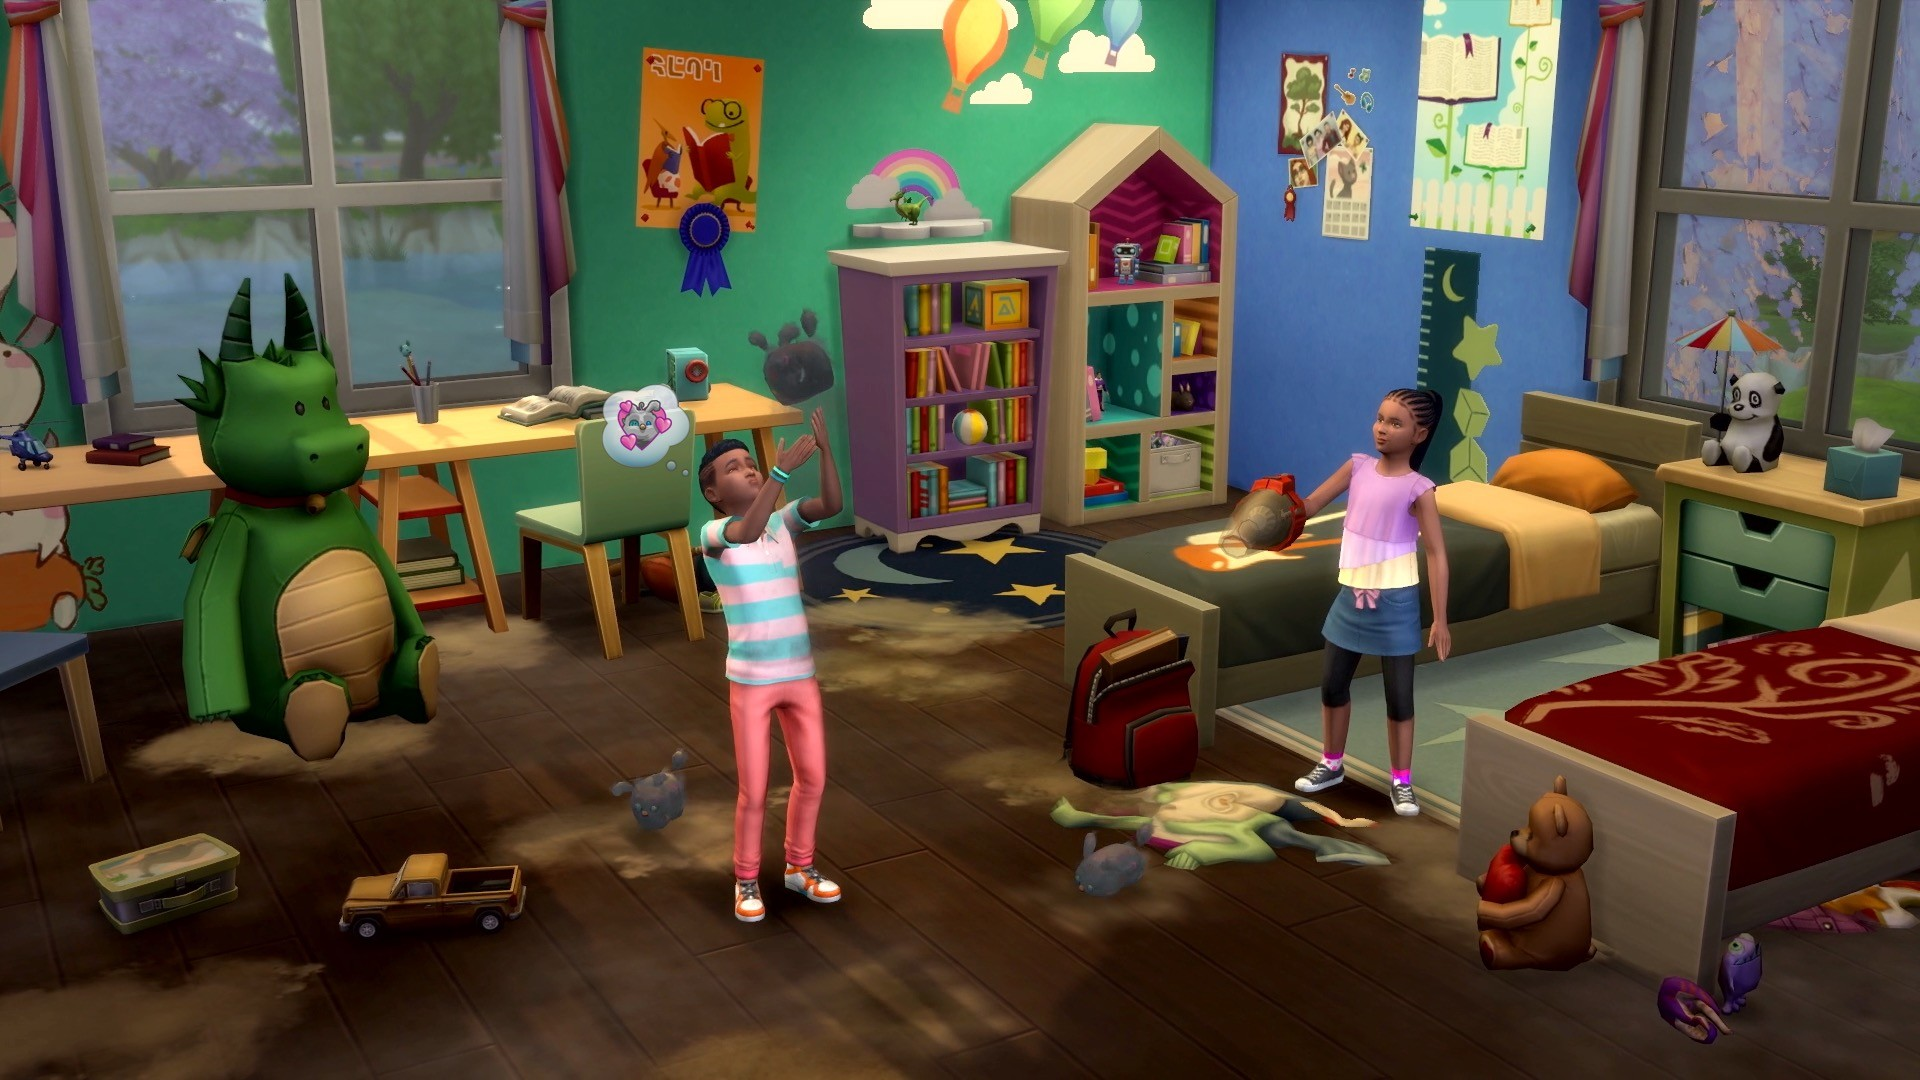 The Sims 4 Bust the Dust Screenshot